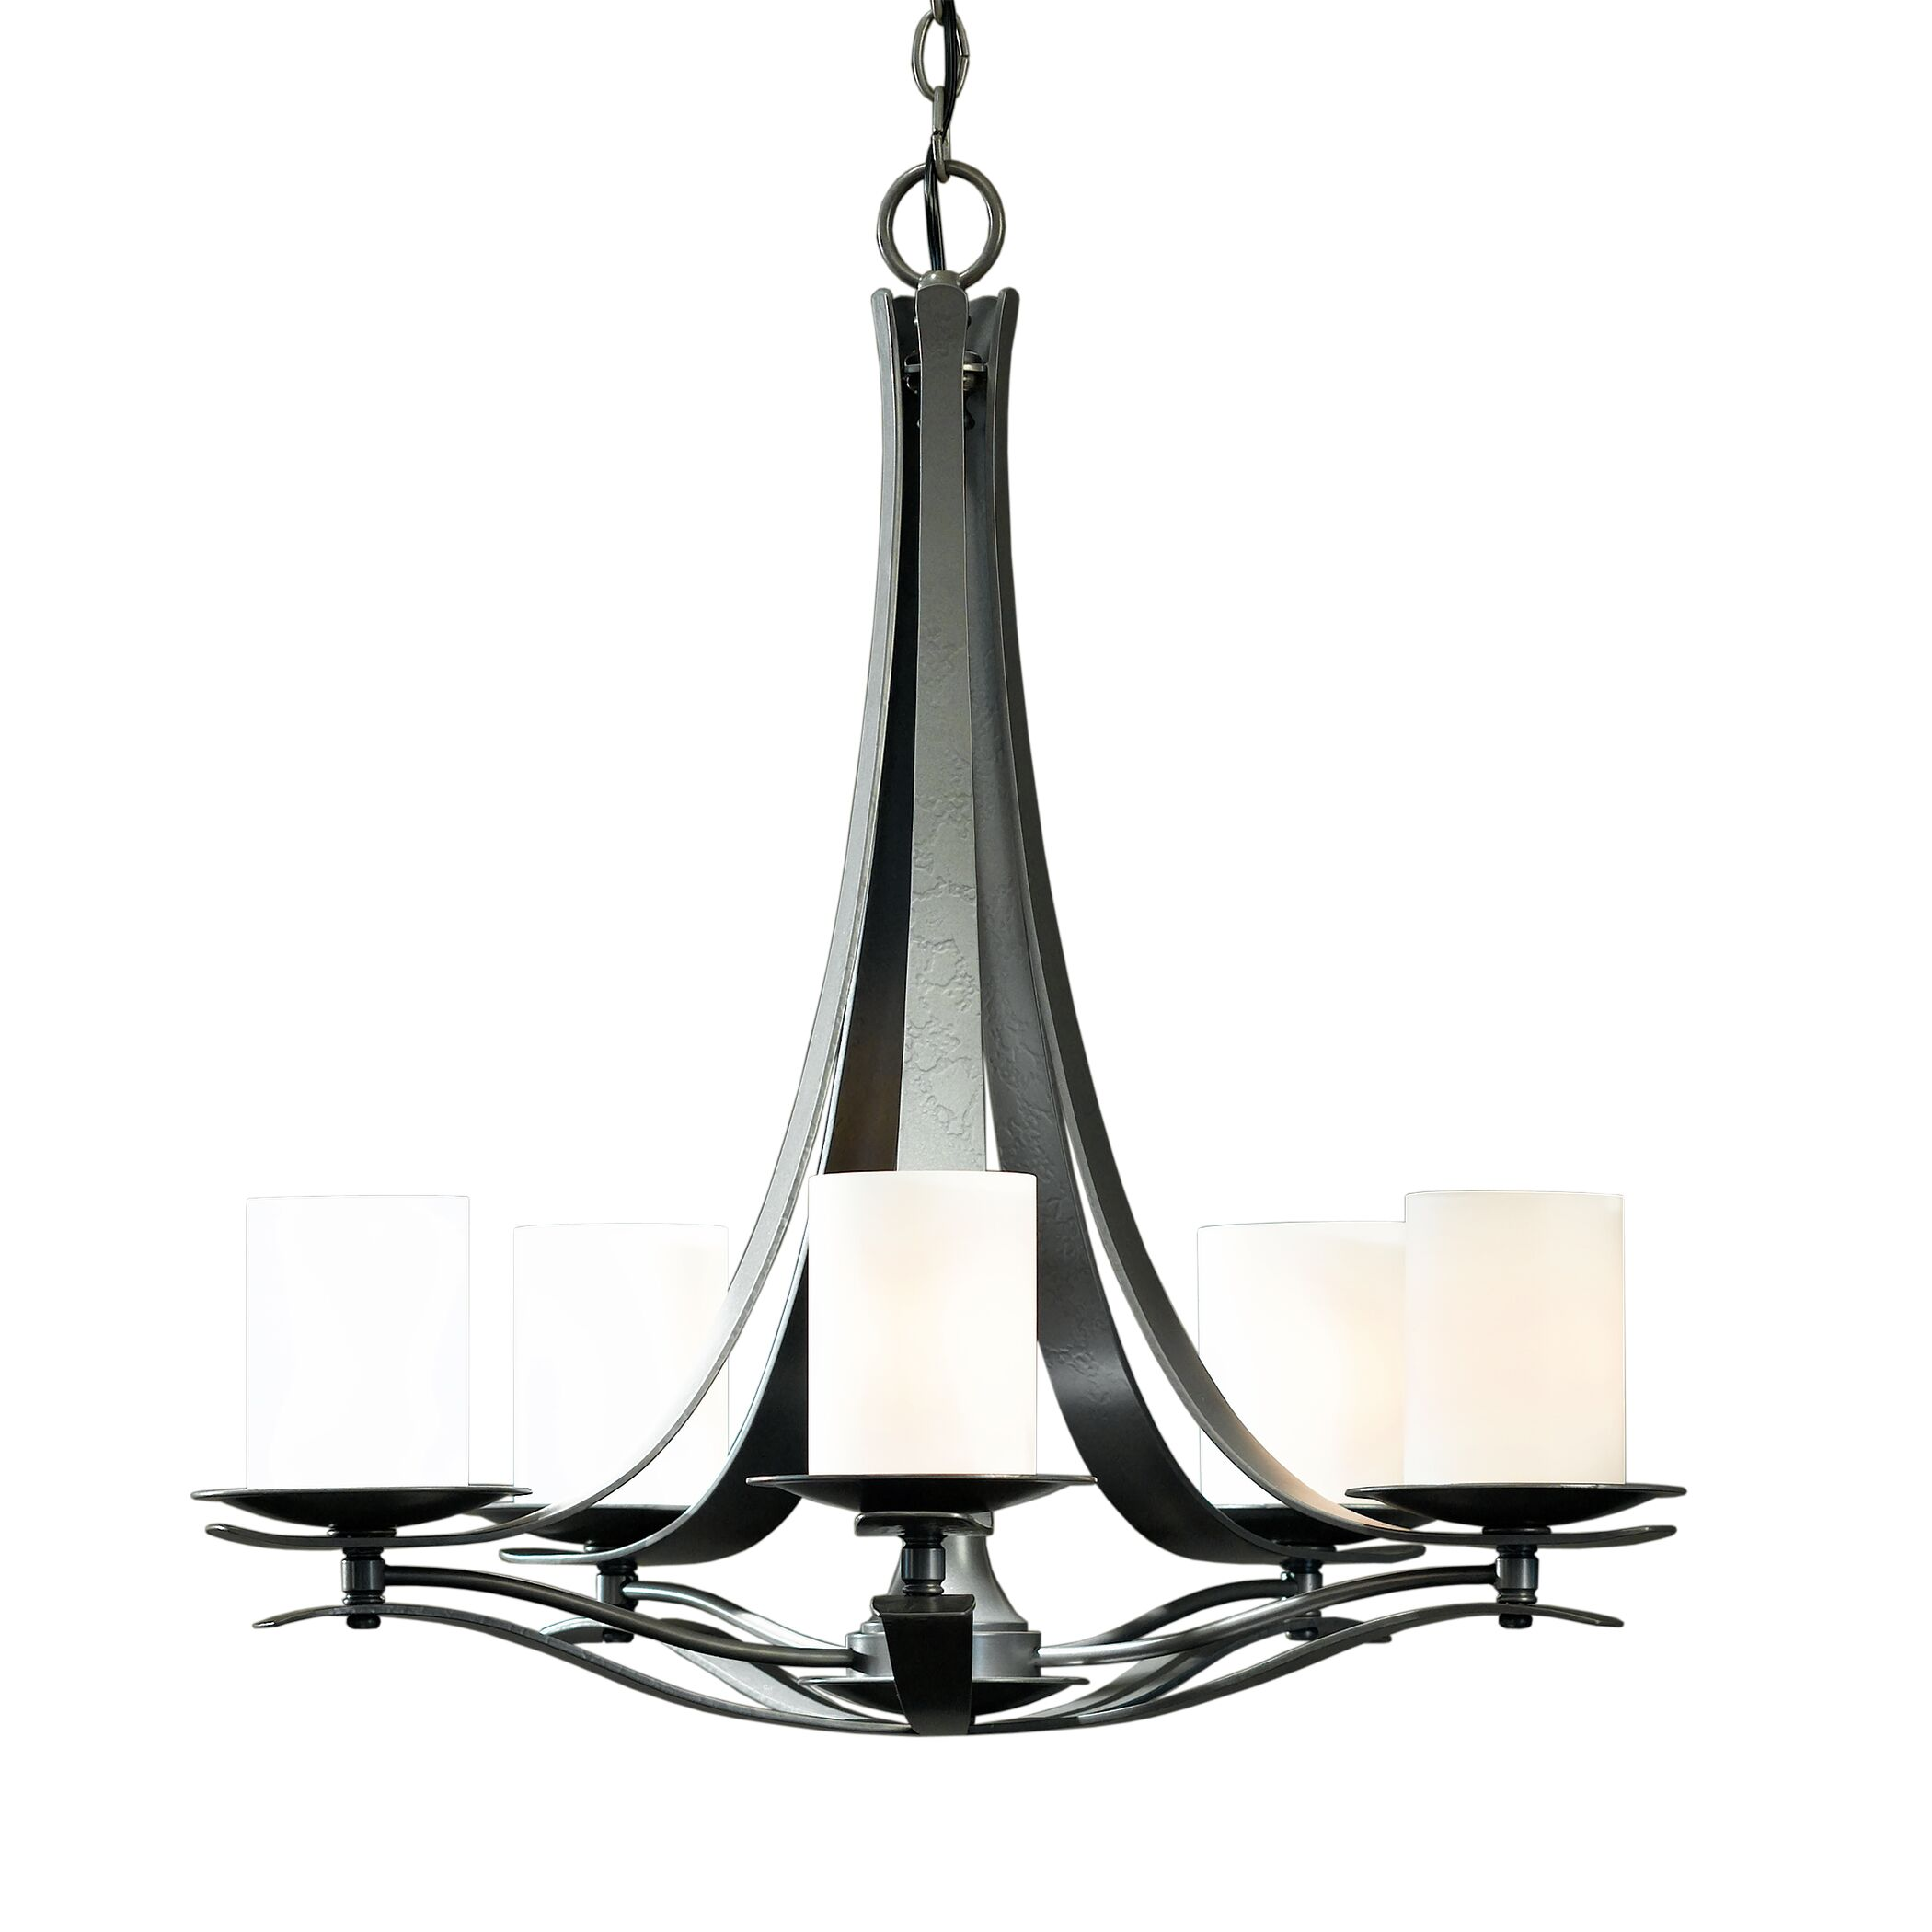 Berceau 5-Light Shaded Chandelier Finish: Brushed Steel, Shade Color: Stone, Bulb Type: (5) 60W fluorescent base bulbs